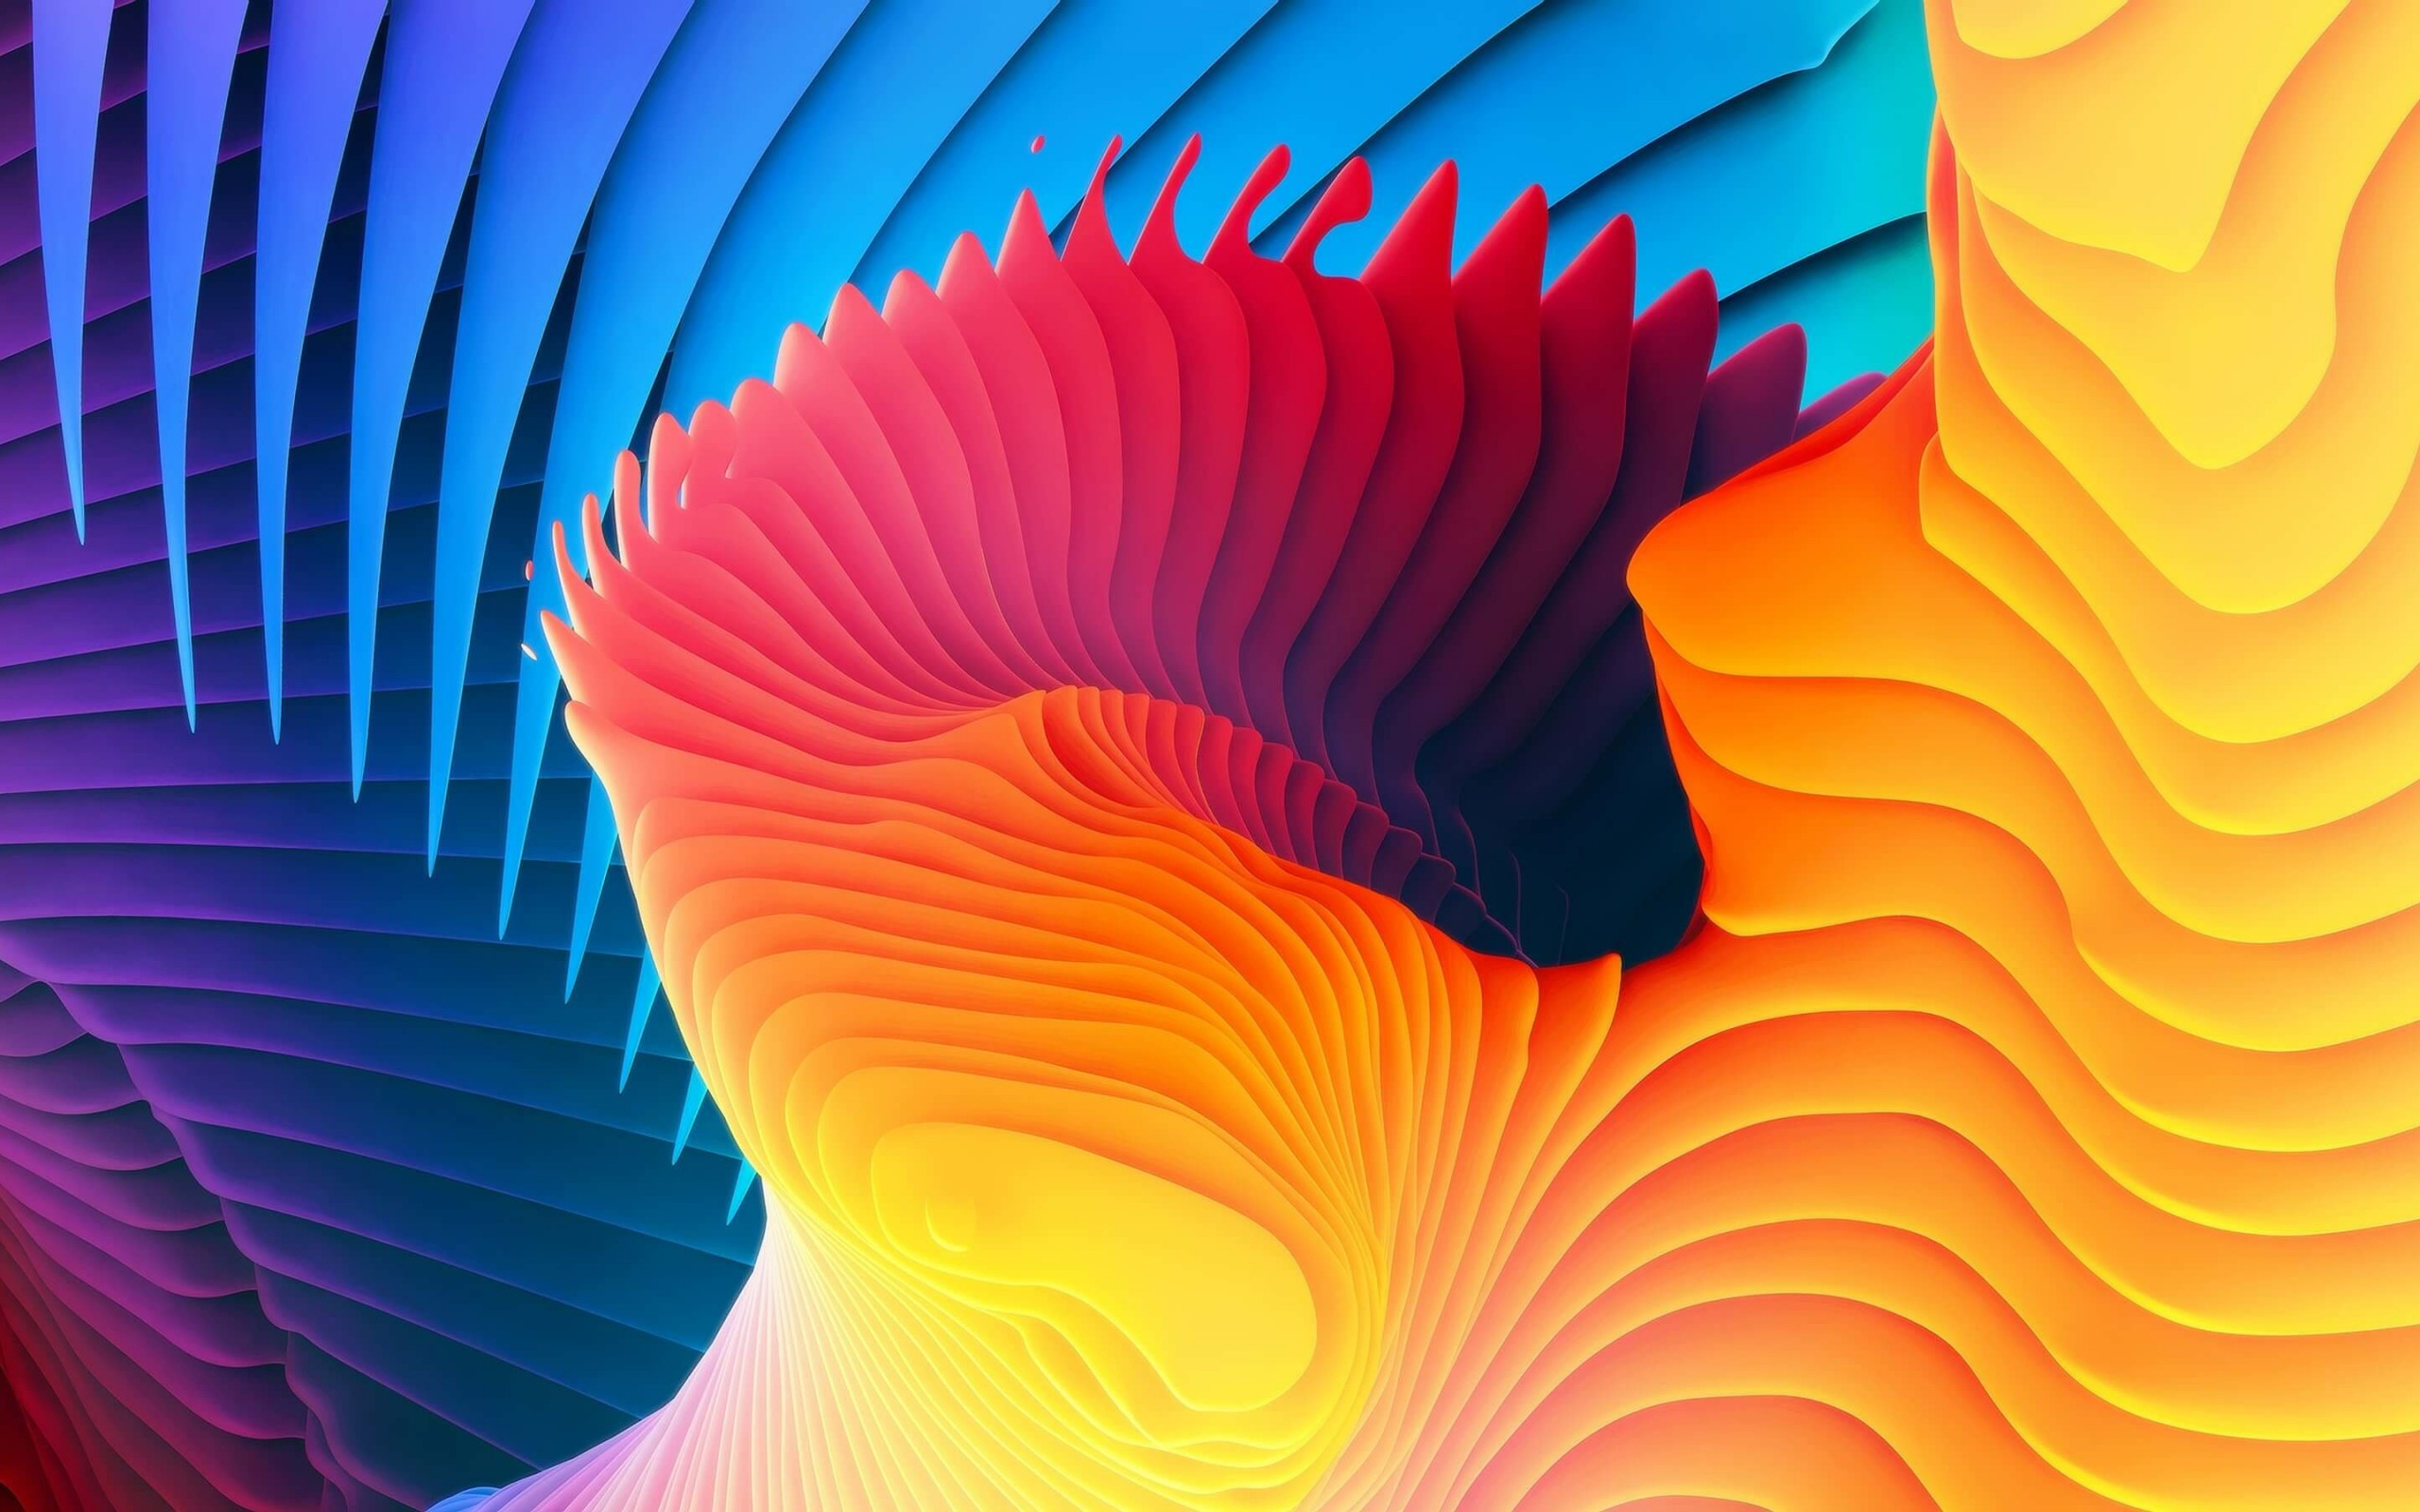 3D Colorful Spiral Wallpaper for Desktop 2560x1600